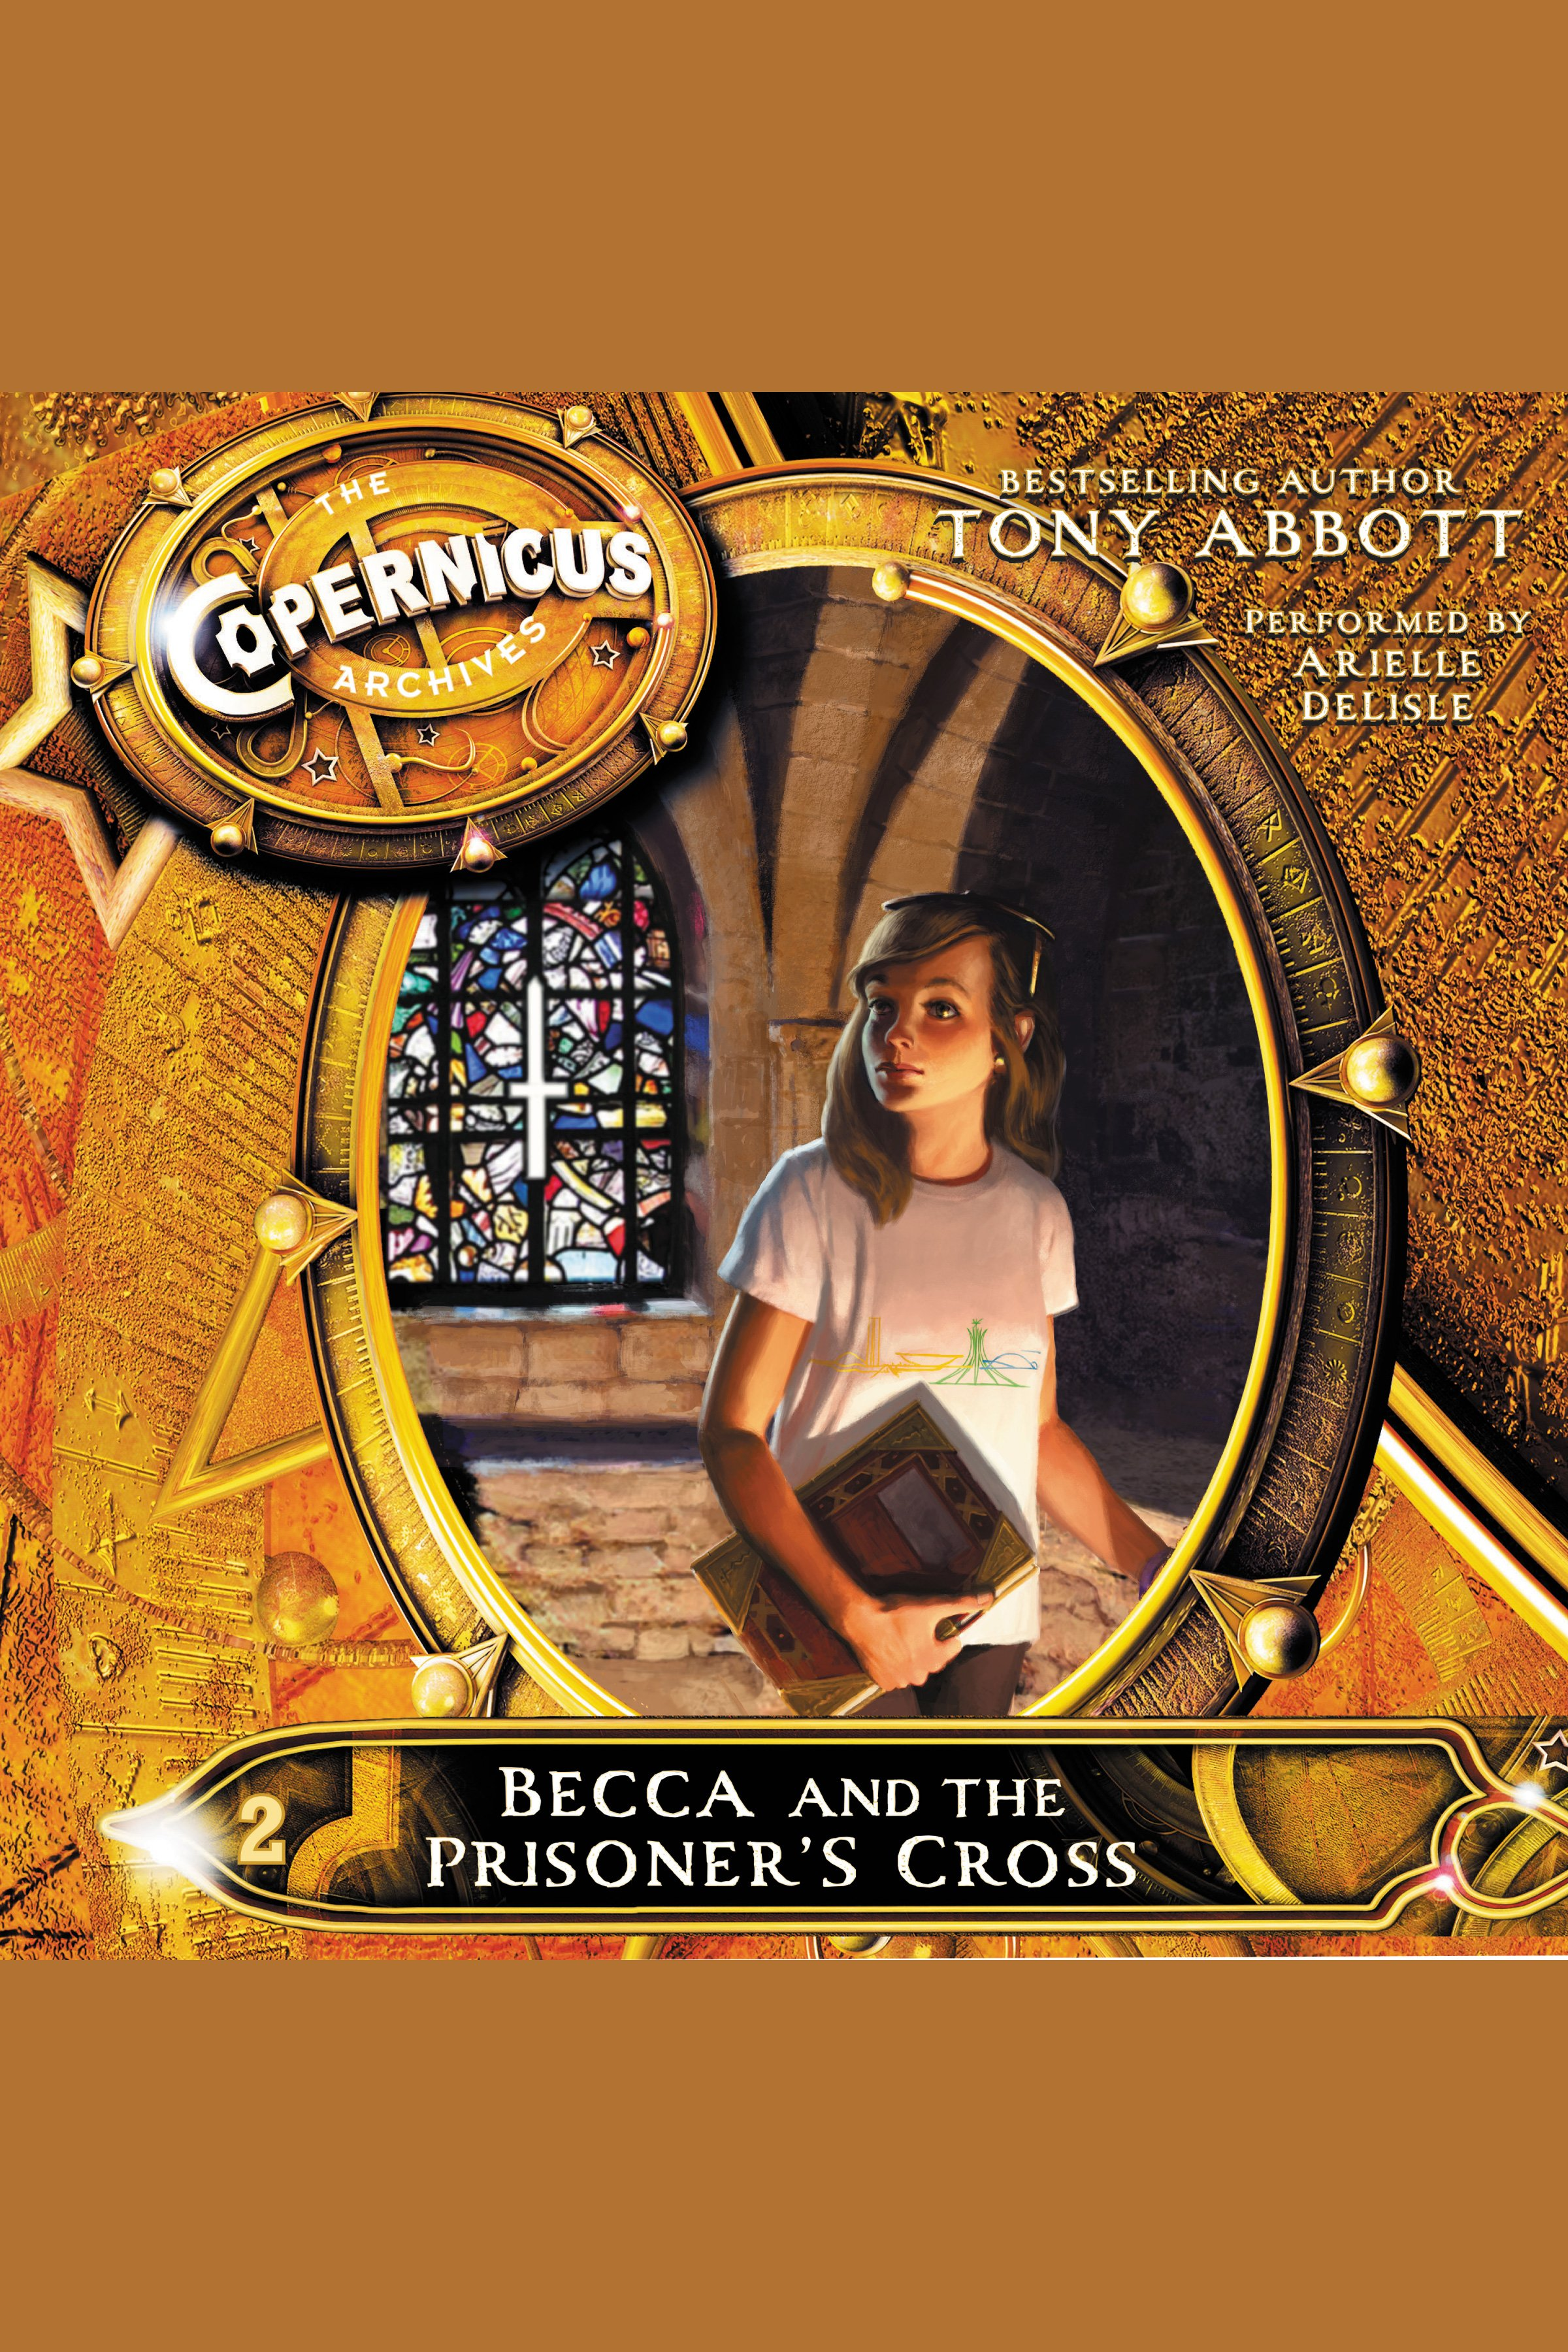 The Copernicus Archives #2: Becca and the Prisoner's Cross cover image